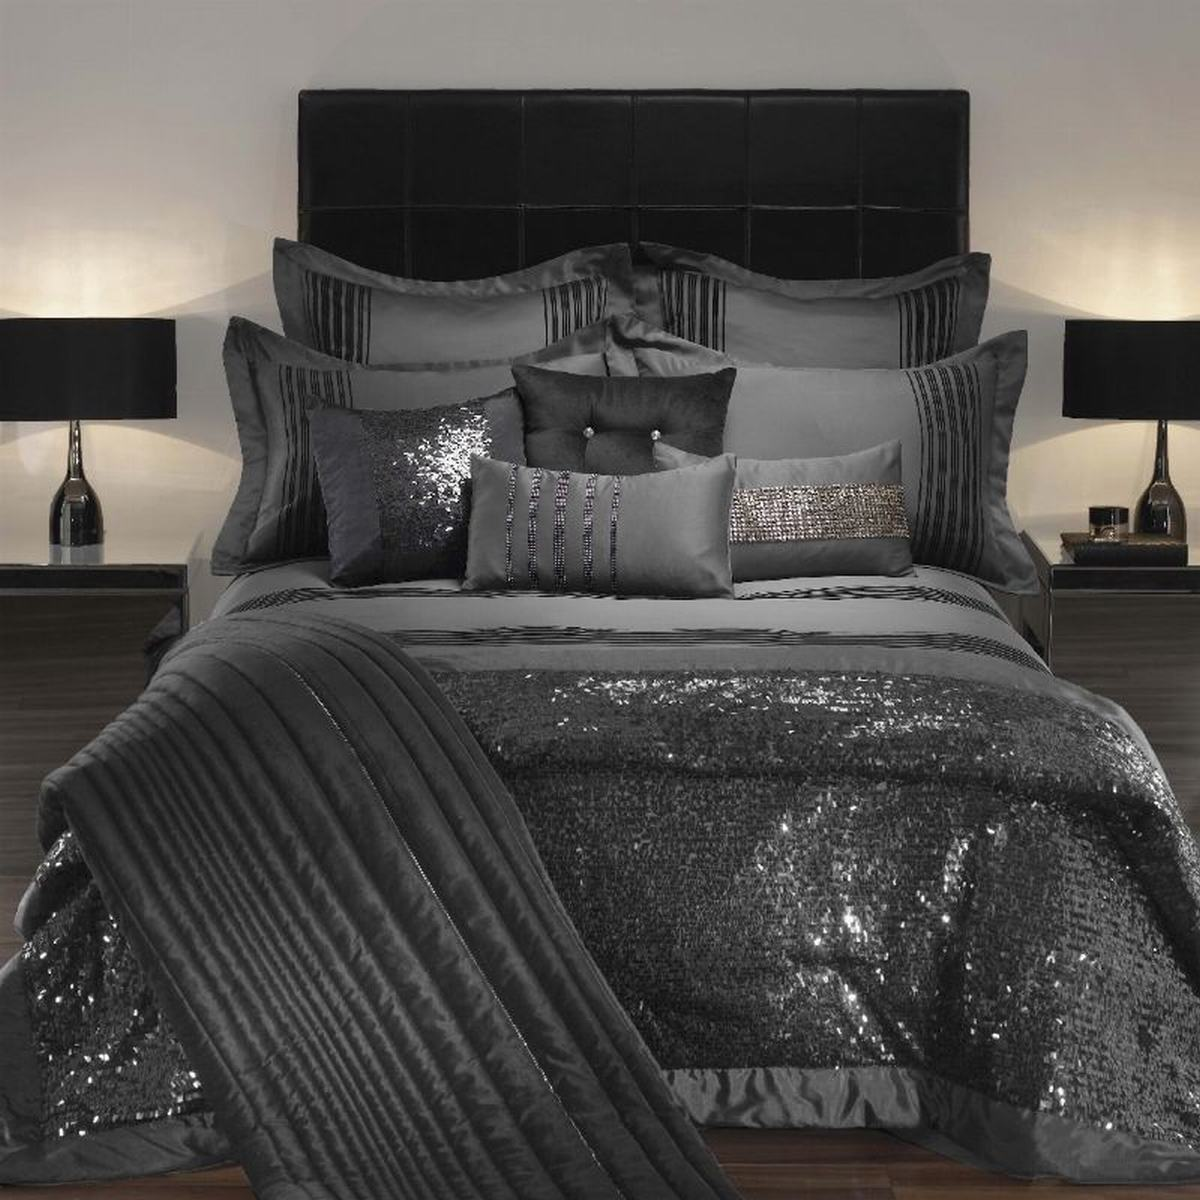 Luxury bed set trends 2014 for Interior design bed sheets